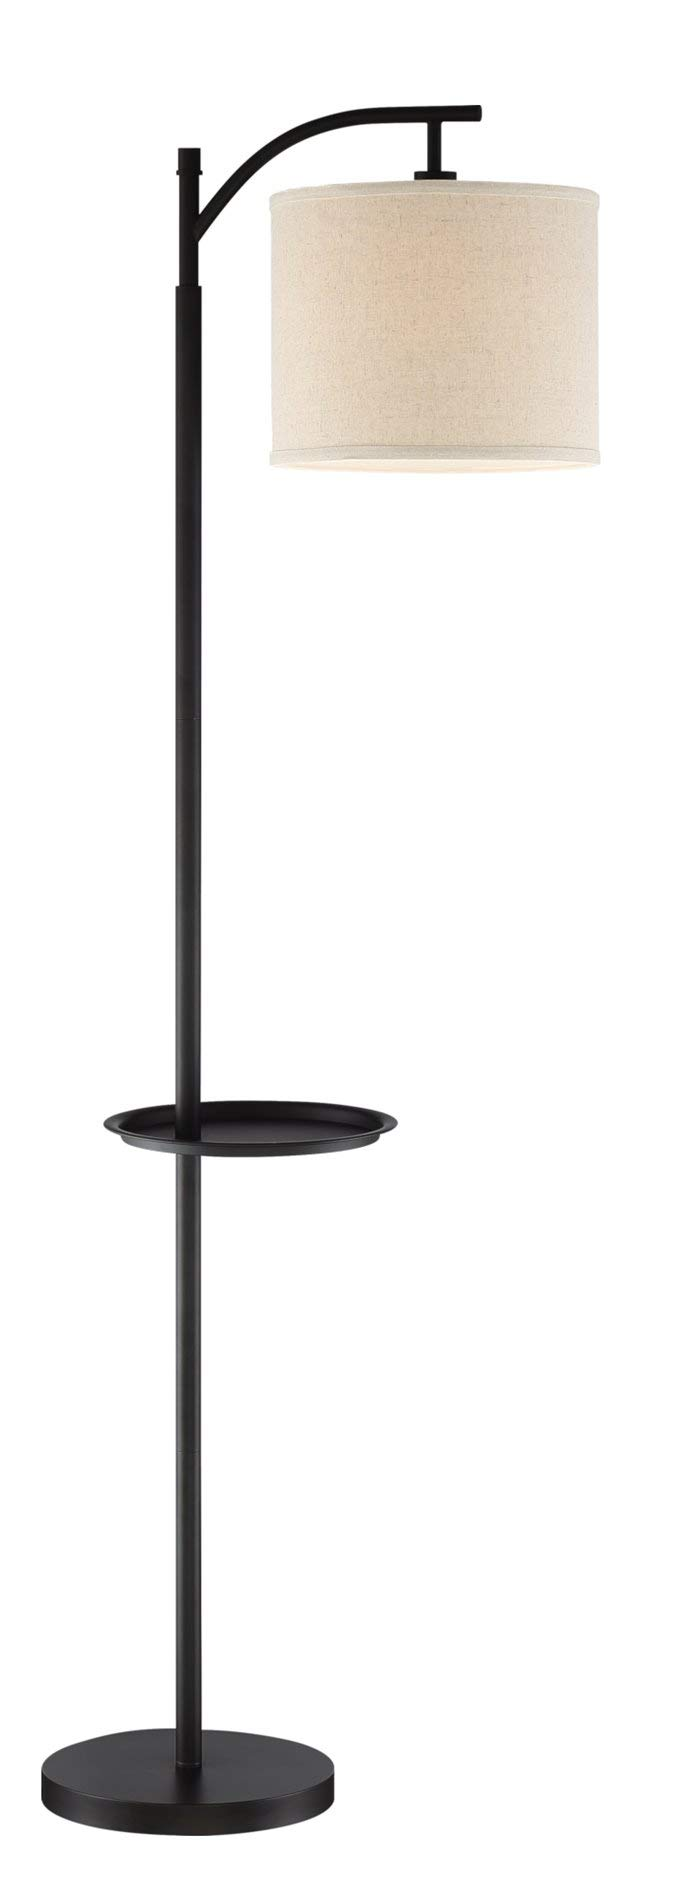 Revel/Kira Home York 63'' Minimalist Tray Table LED Floor Lamp (7W LED, Energy Efficient/Eco-Friendly) + Honey Beige Shade, Black Finish